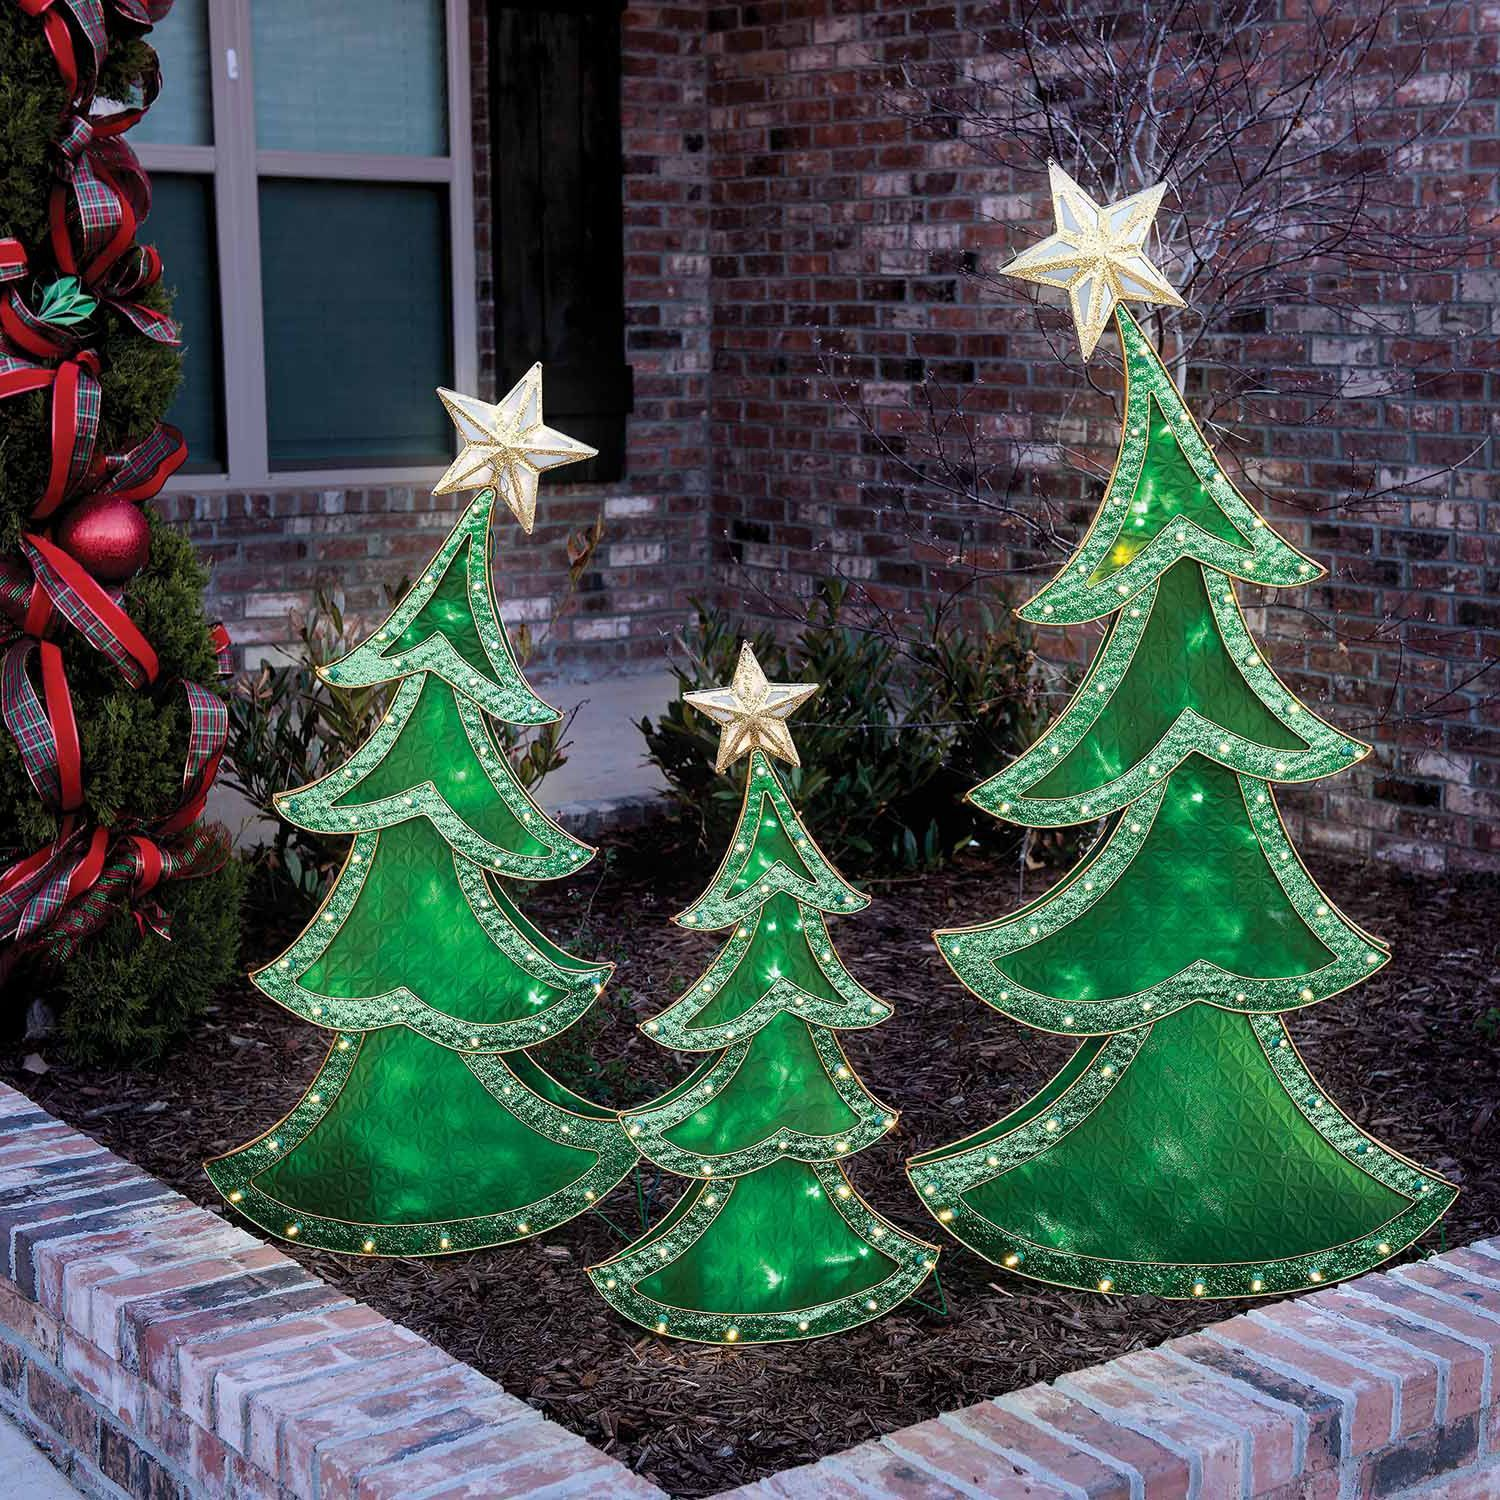 led decorative christmas trees set of 3 36 48 and 60 17998 at sams club - Sams Club Outdoor Christmas Decorations